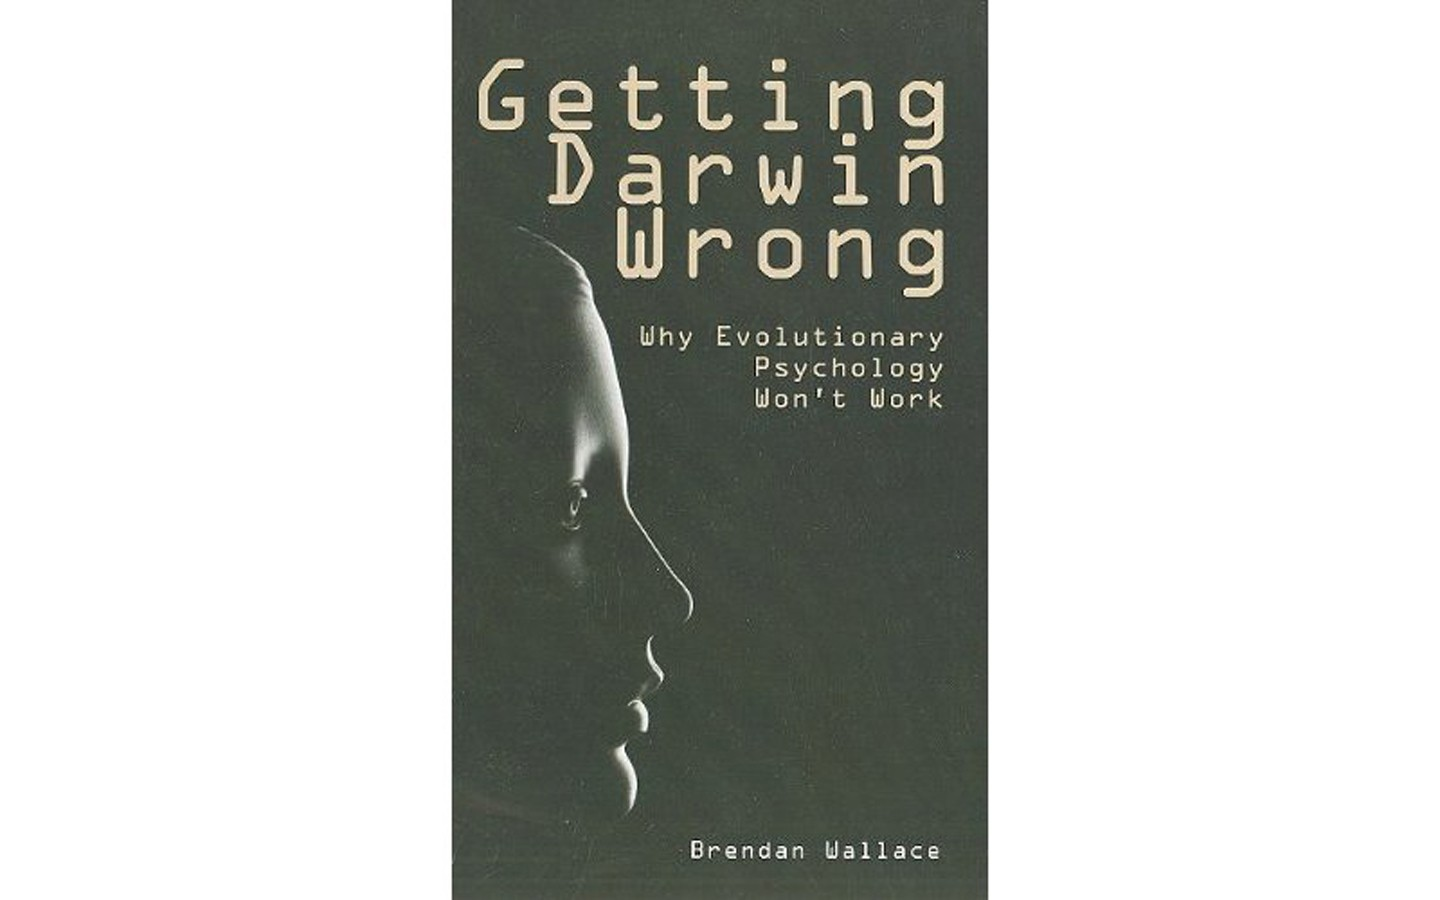 Getting Darwin Wrong: Why Evolutionary Psychology Won't Work - BY BRENDAN WALLACE - IMPRINT ACADEMIC